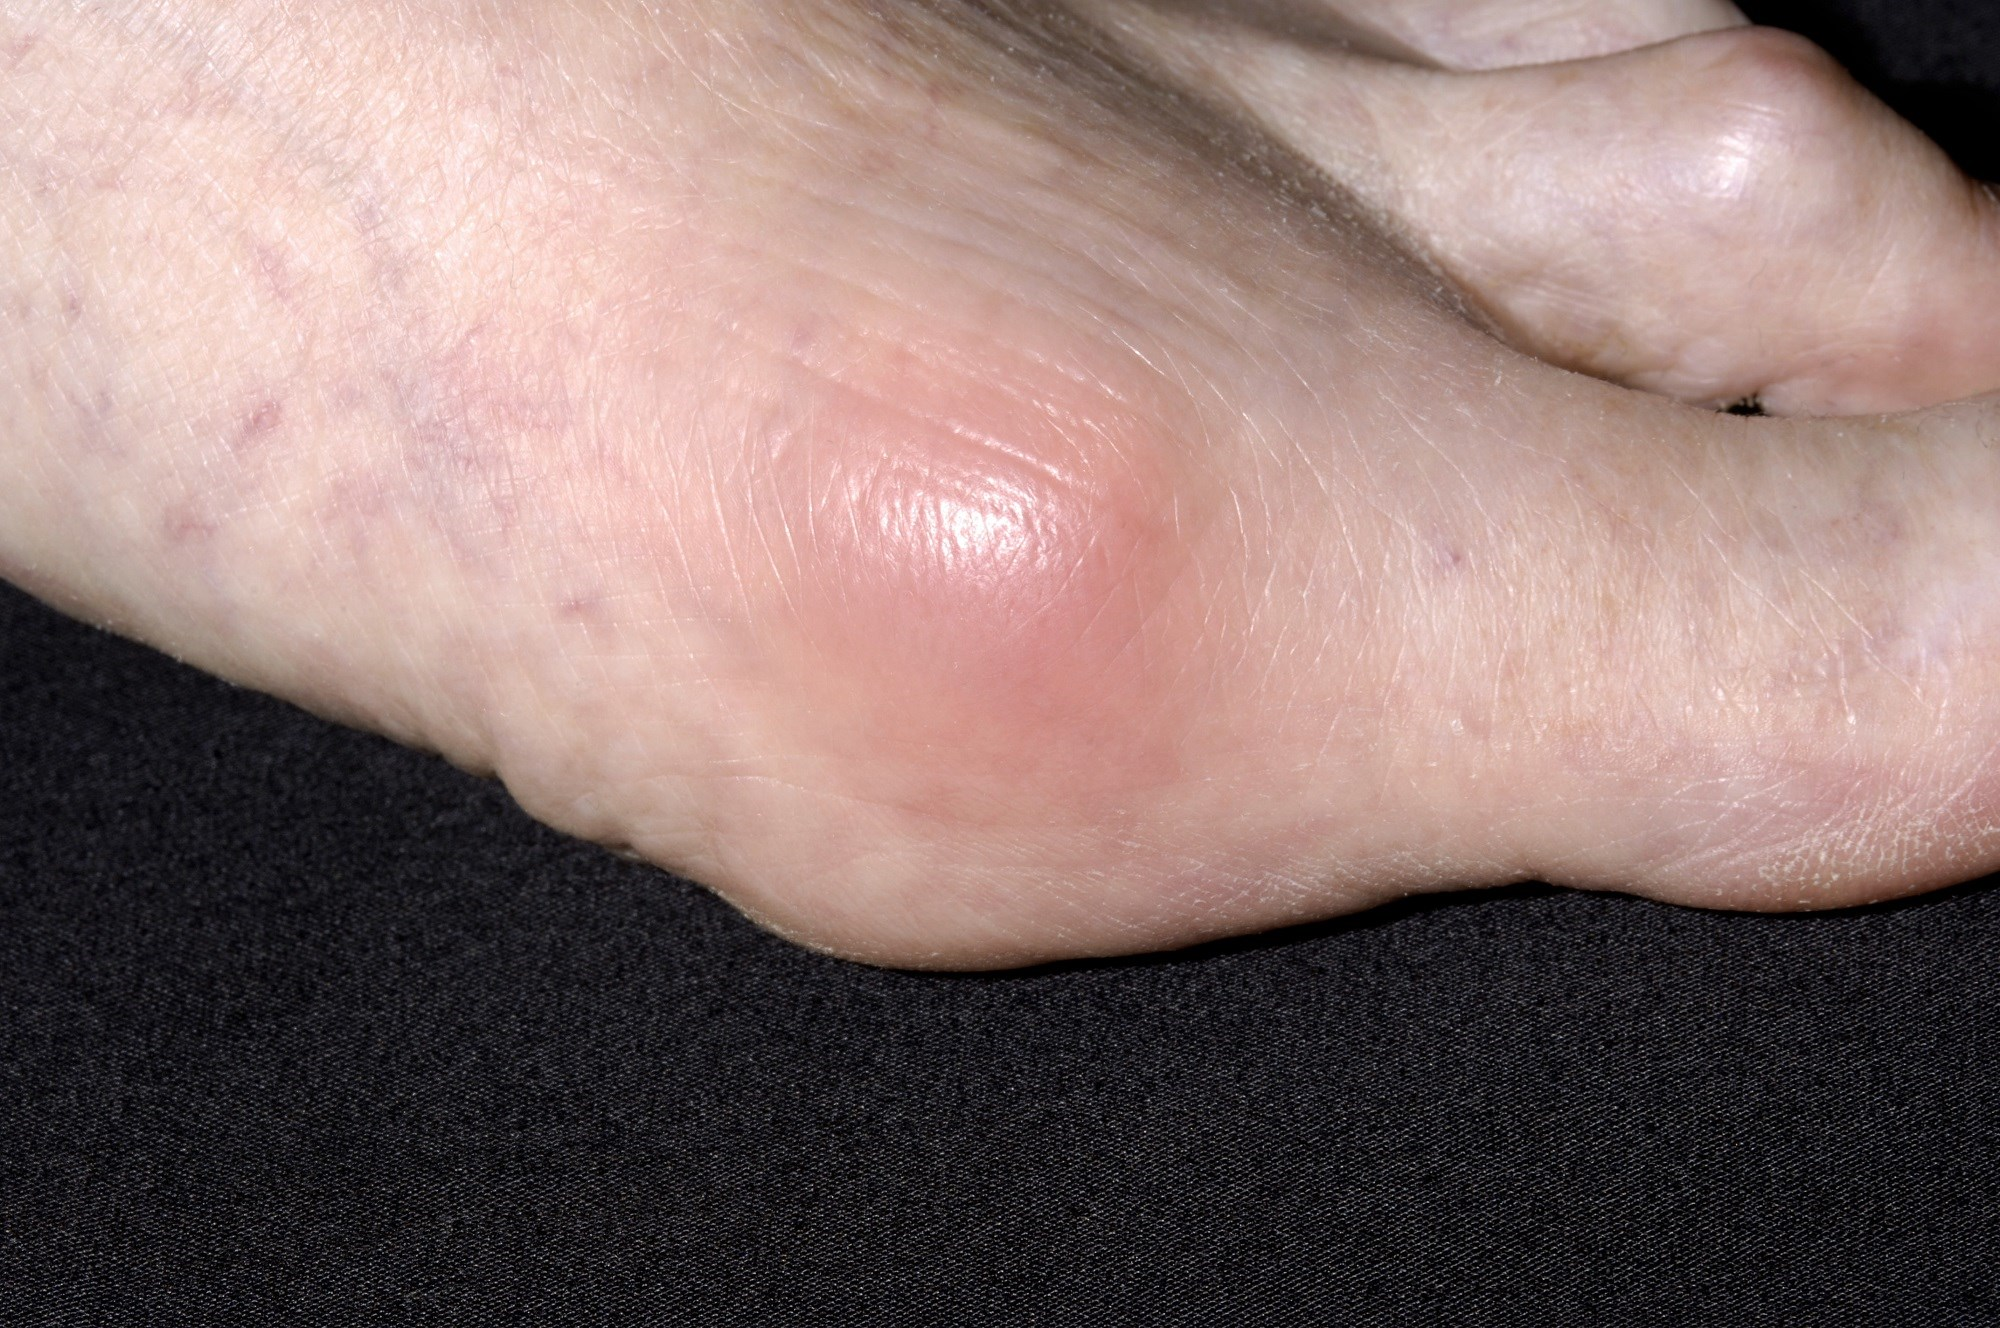 The risk of developing gout in patients with OSA was highest 1 to 2 years after the index date.